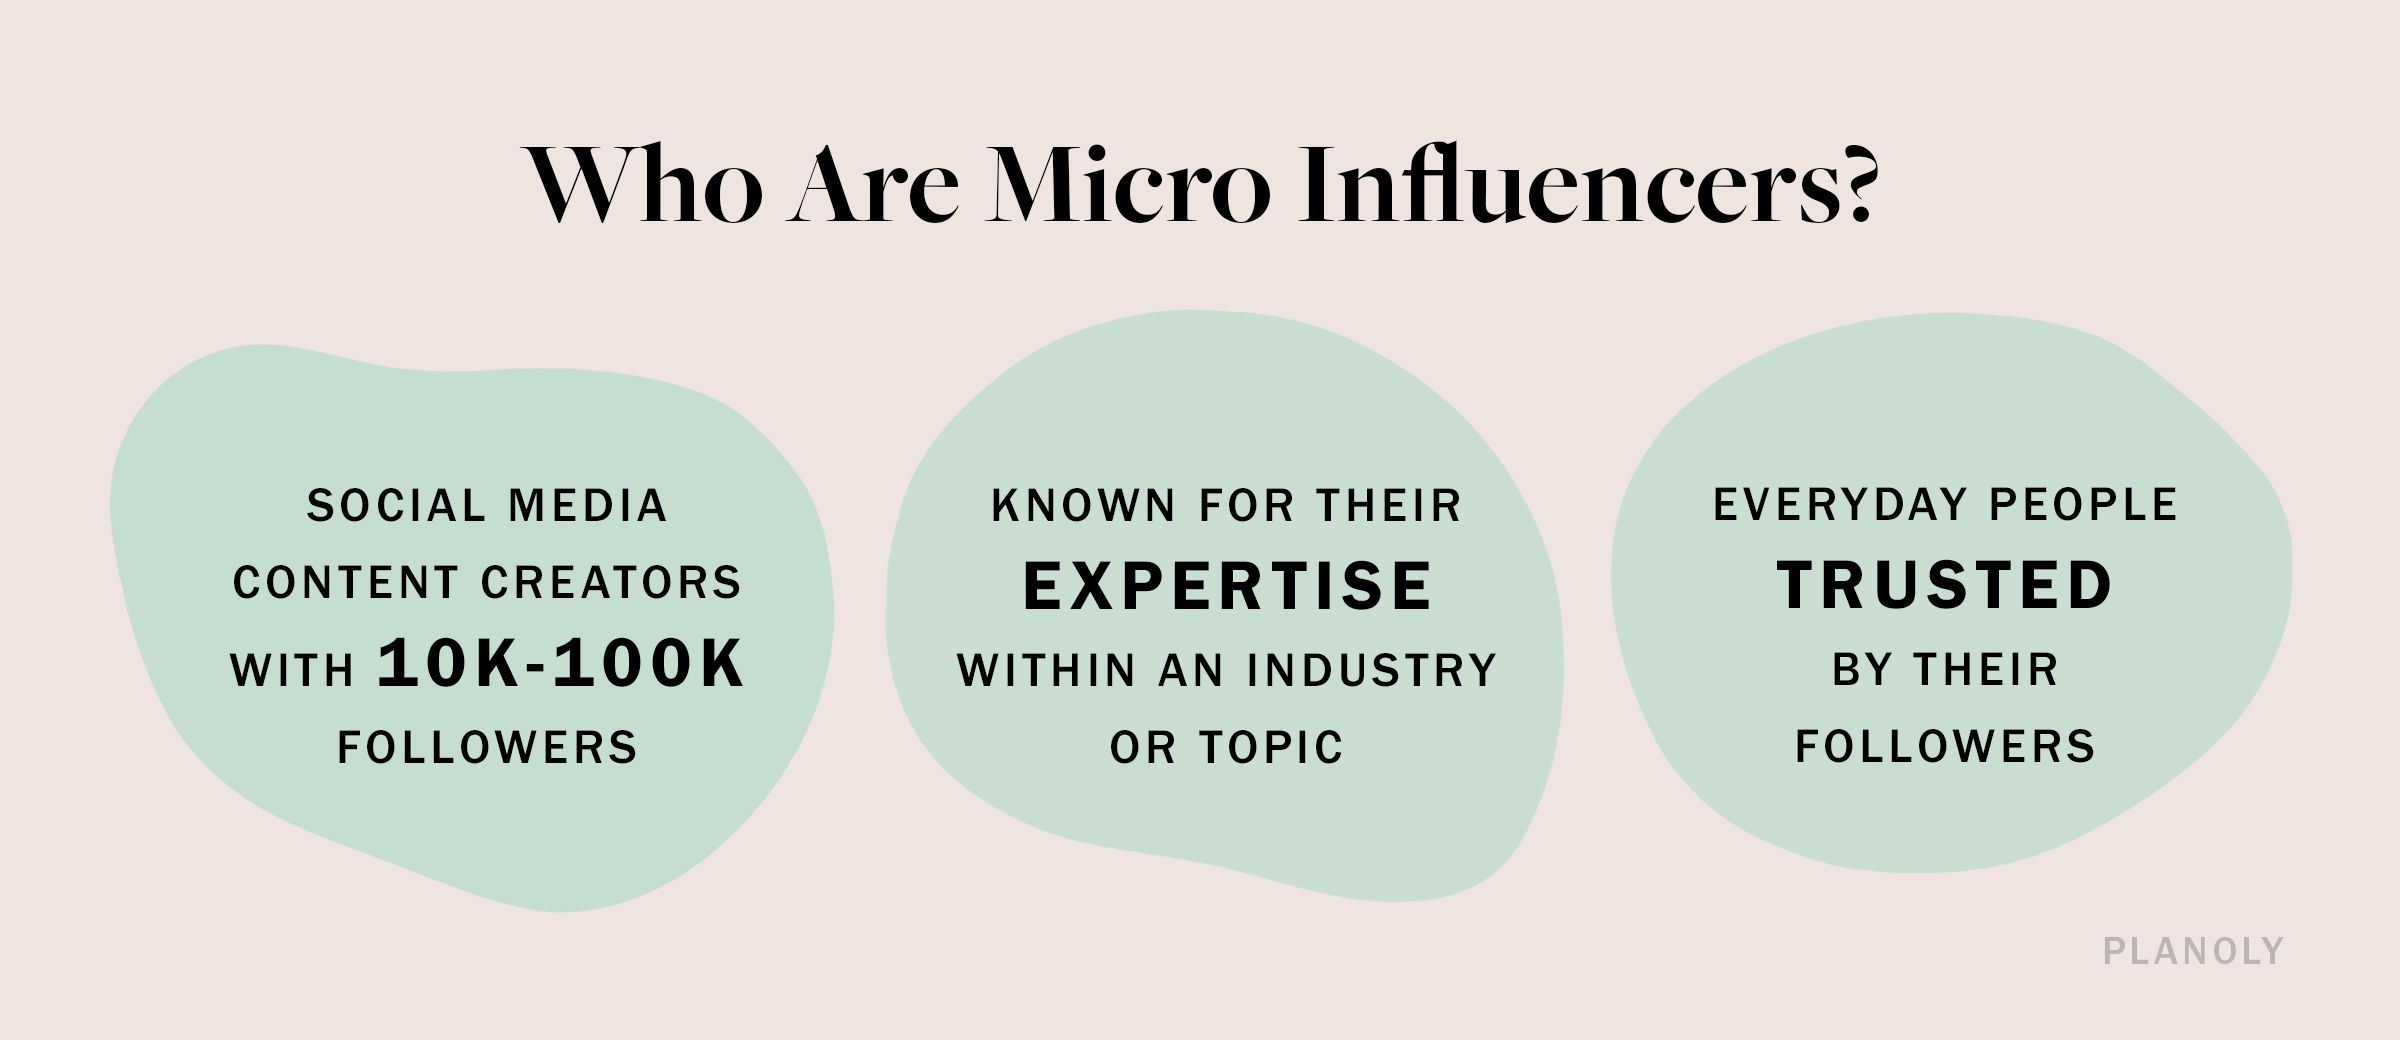 PLANOLY - Blog - Who Are Micro Influencers - Image 1